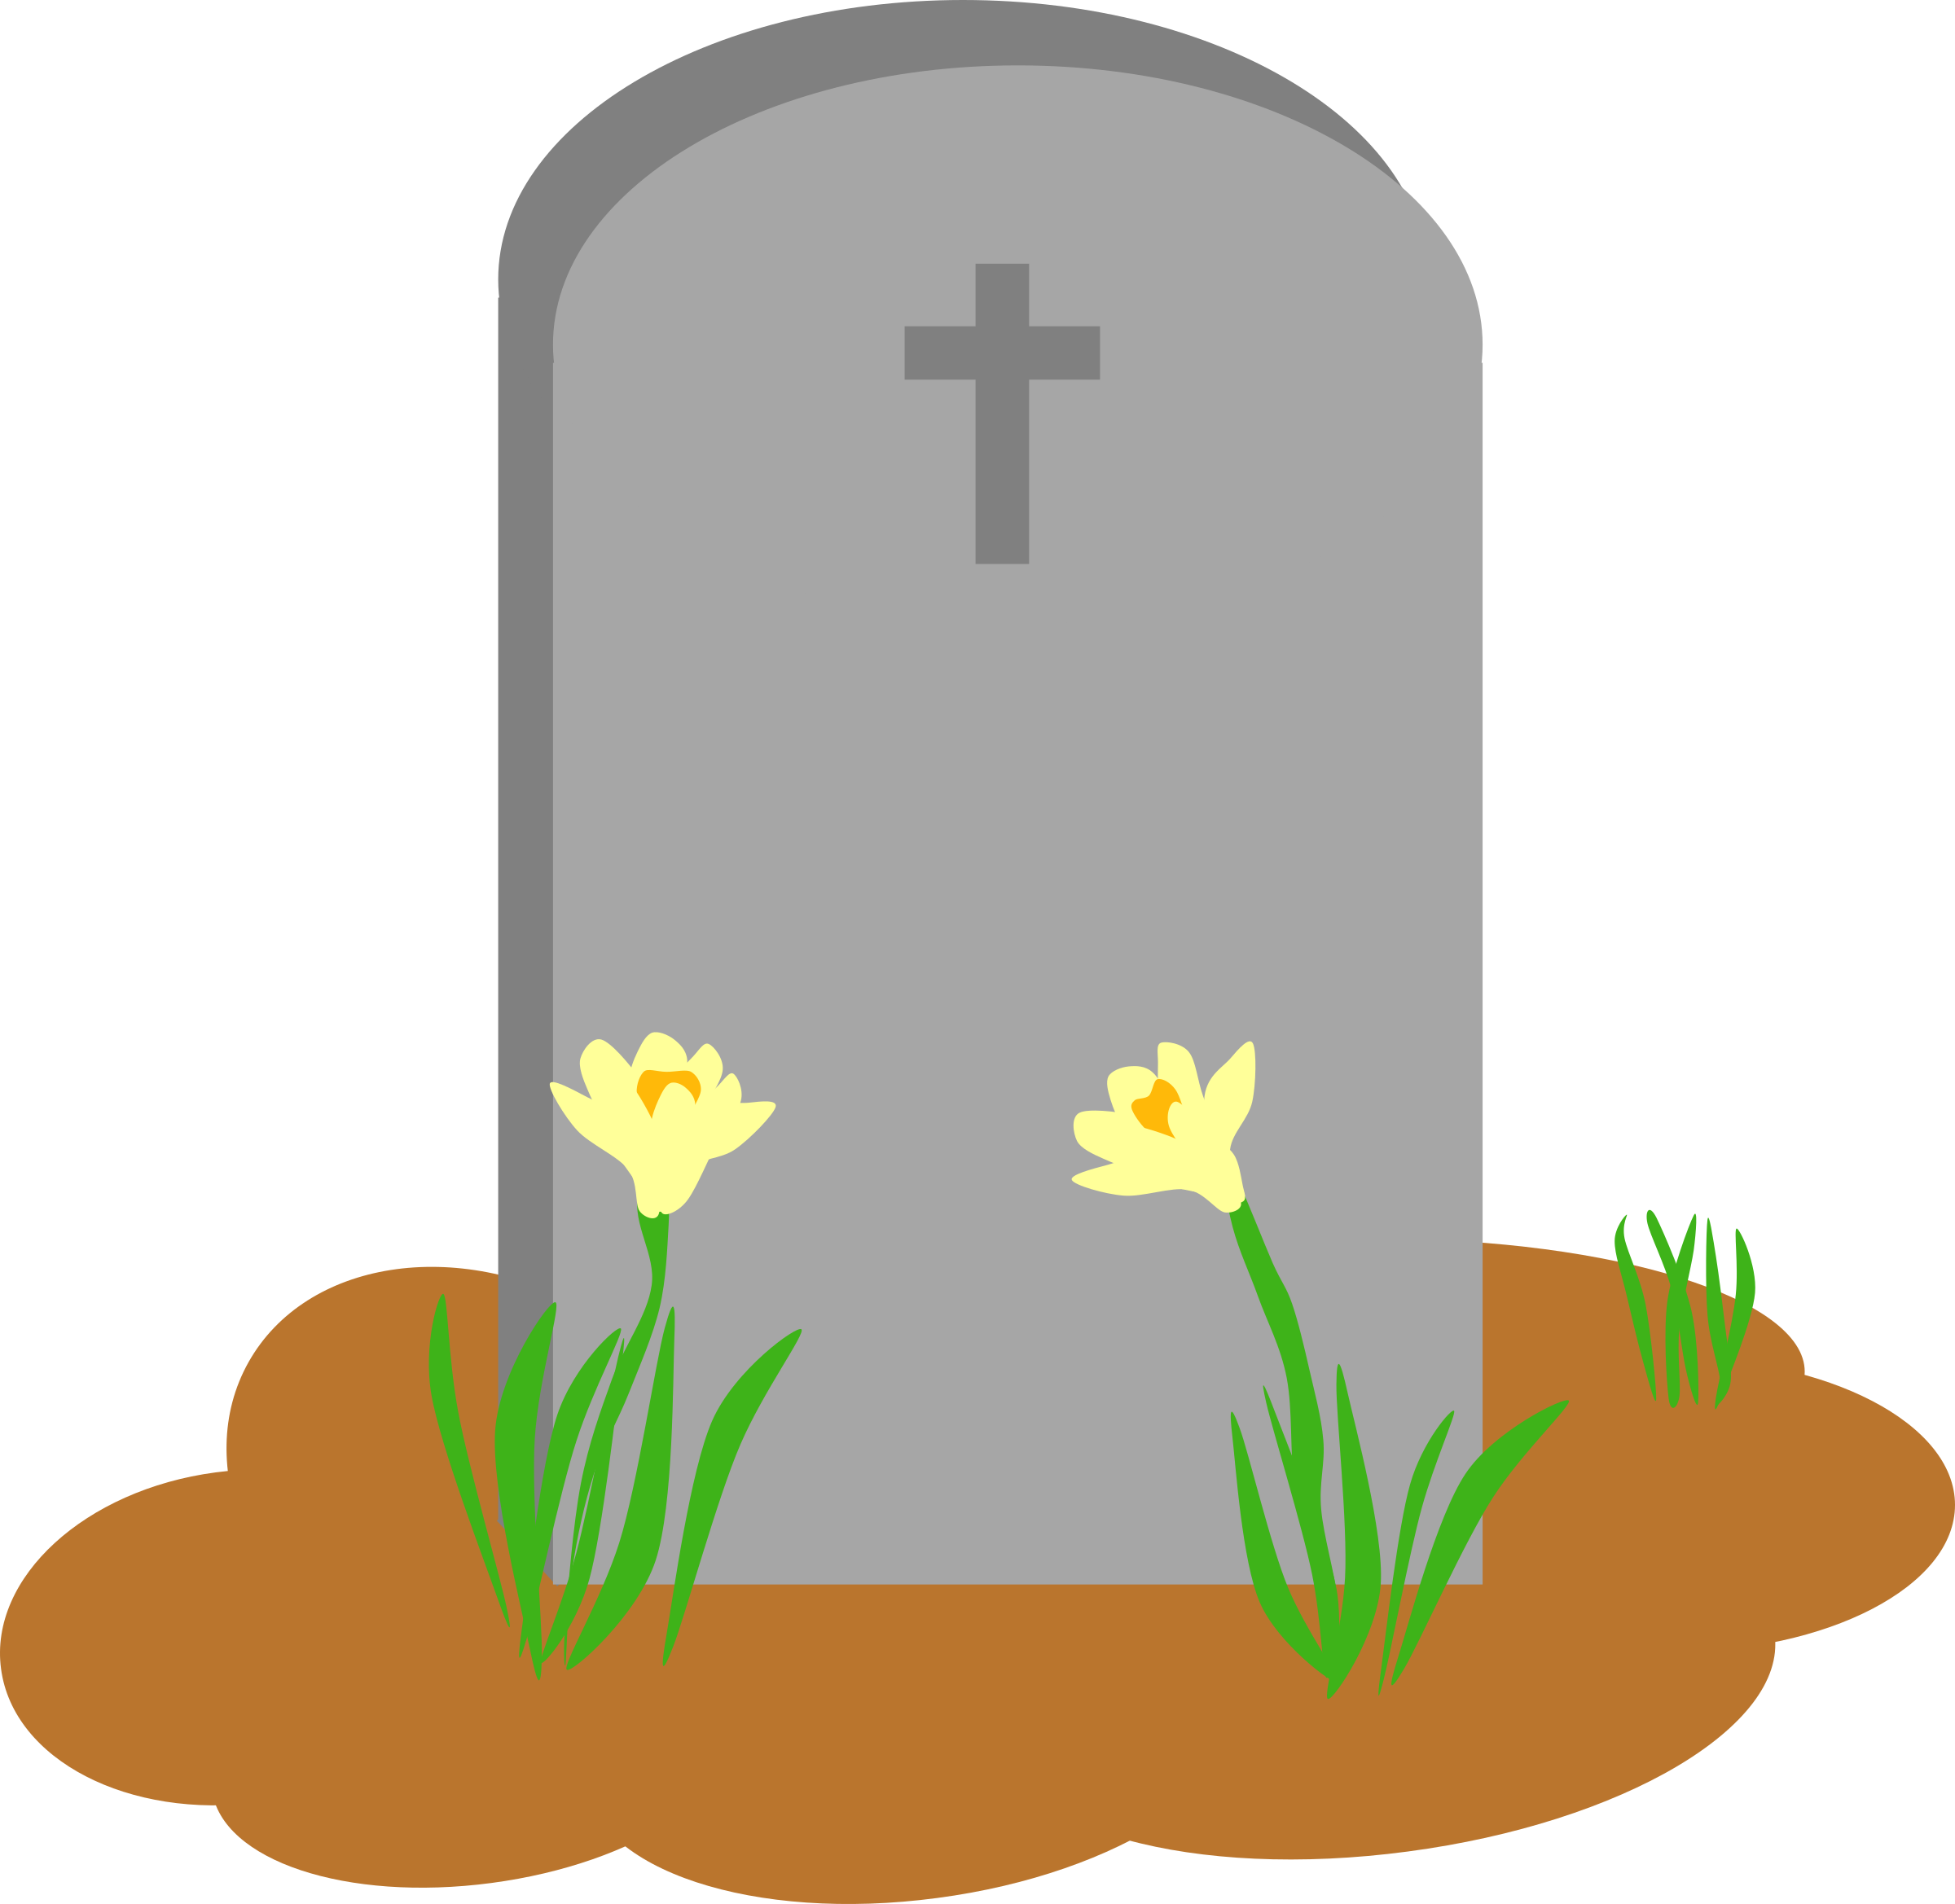 Grave PNG Images Transparent Free Download.